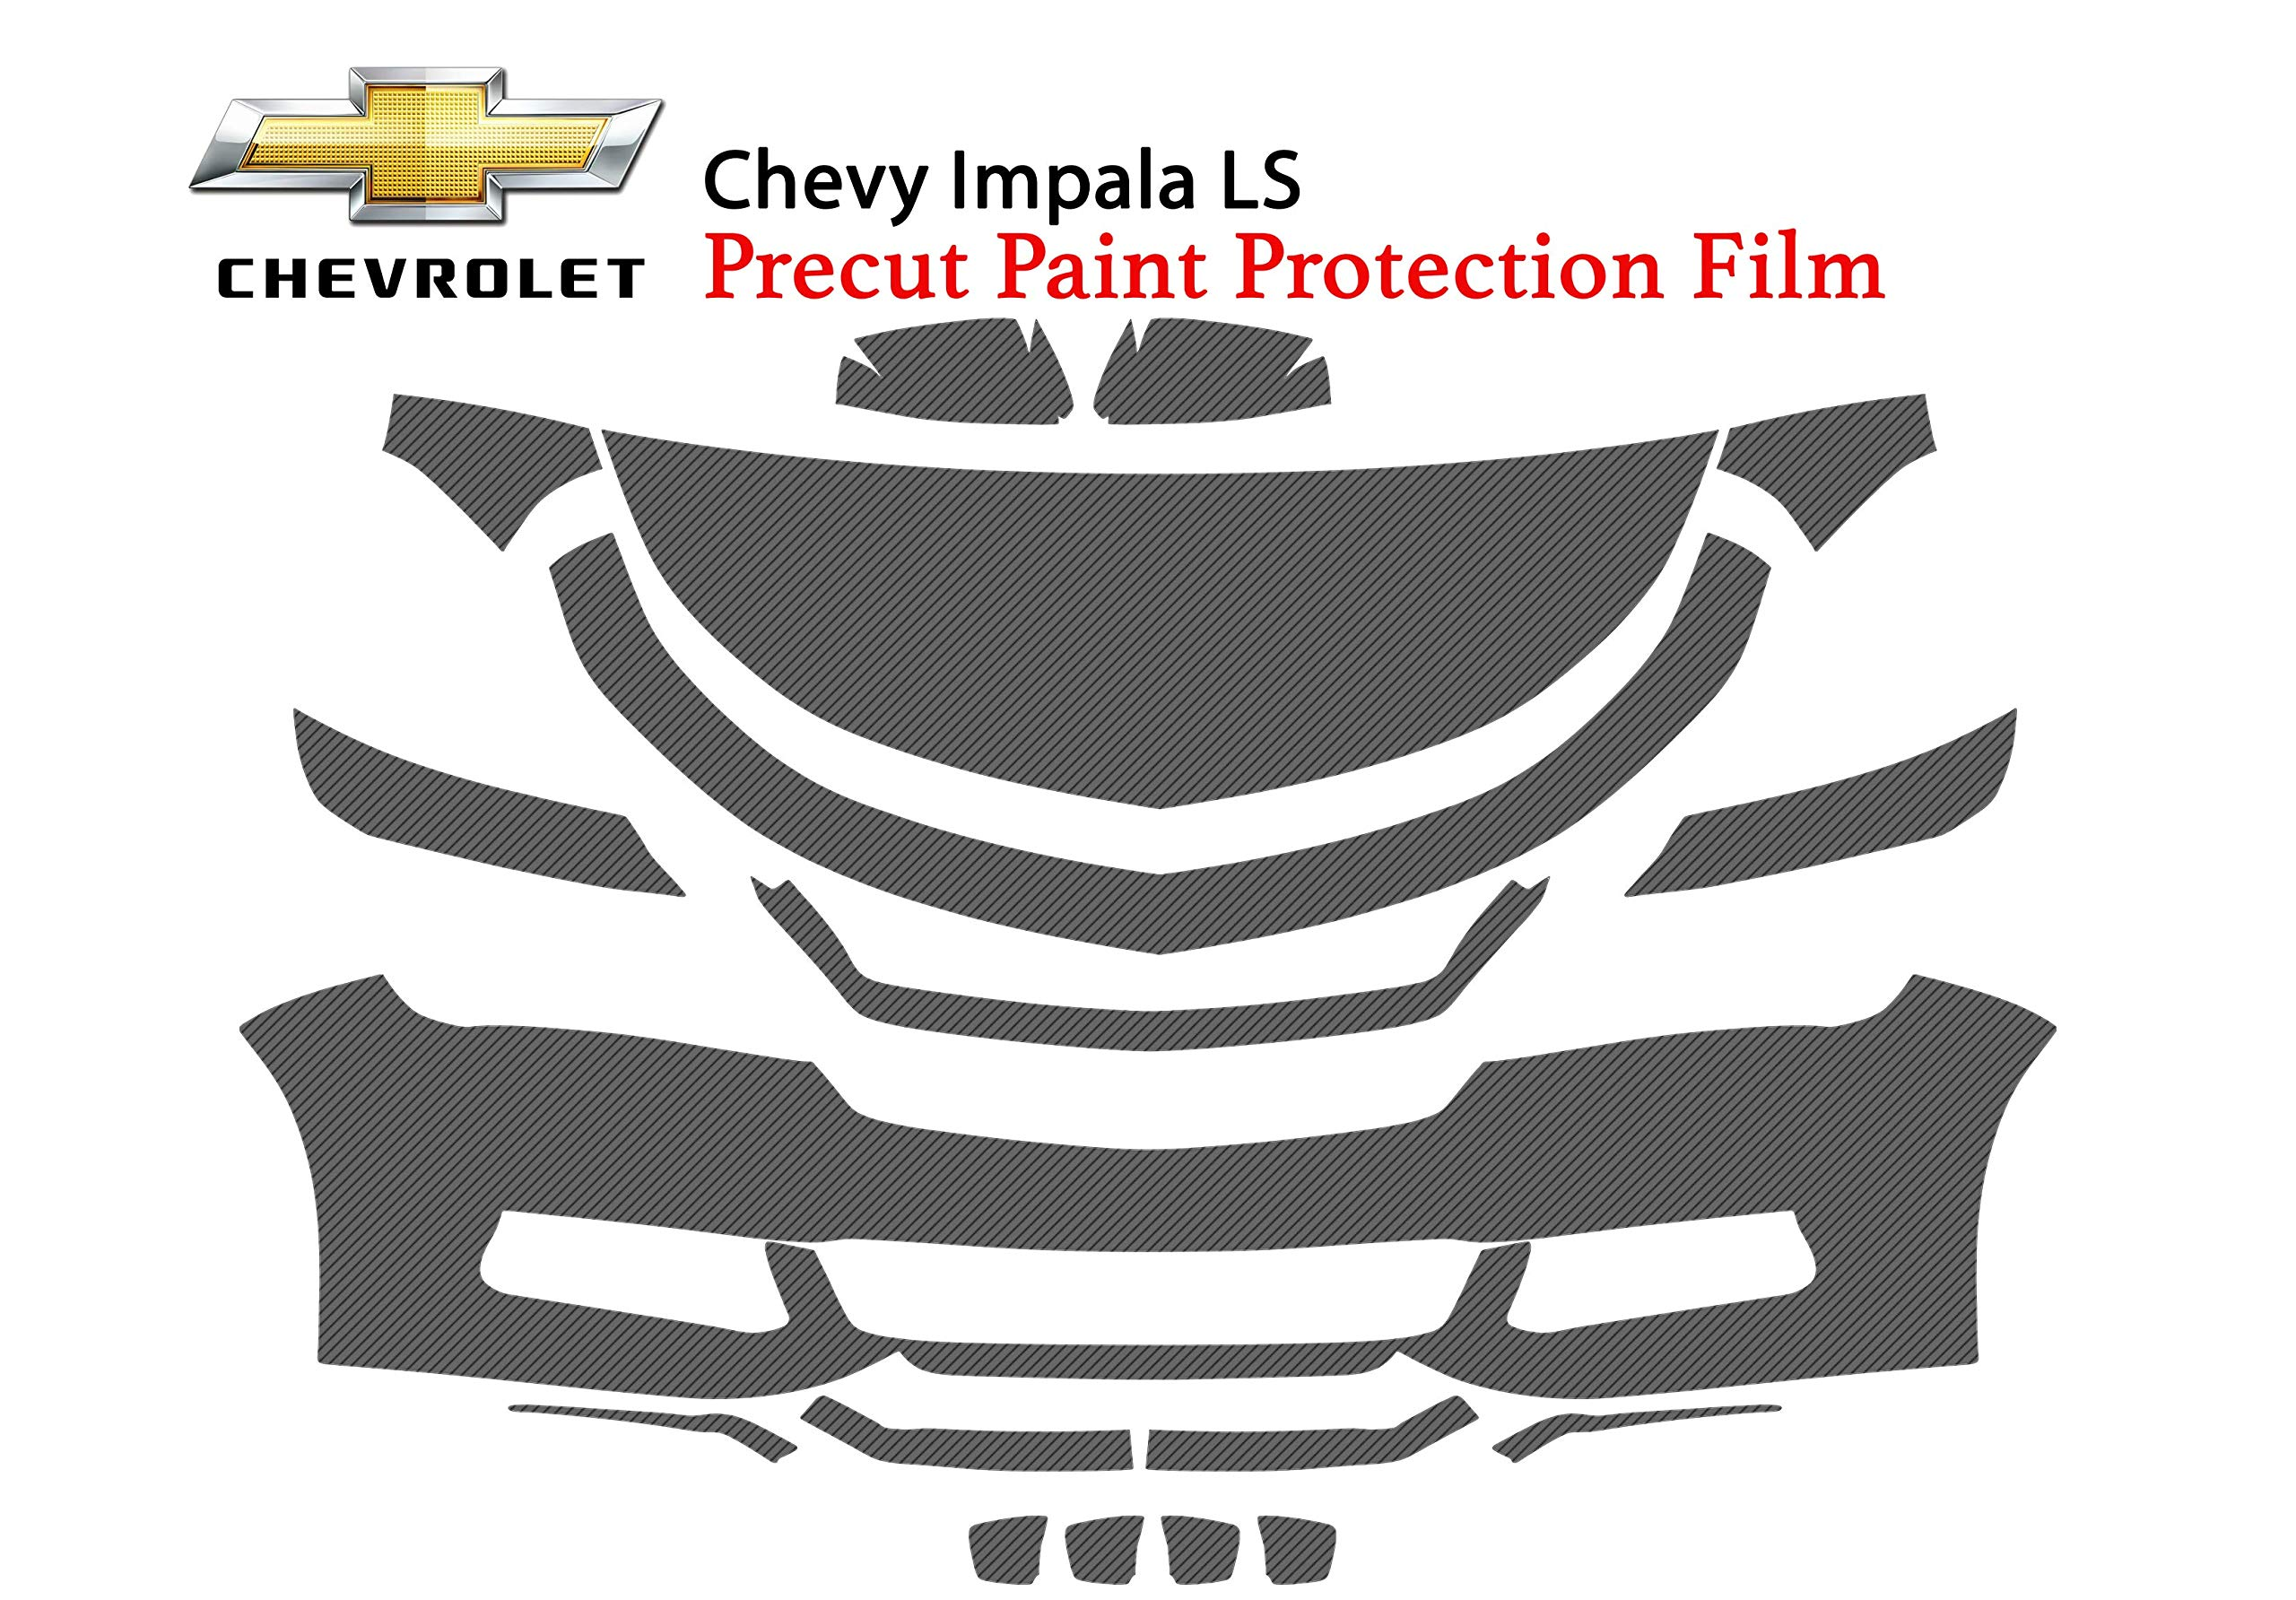 The Online Liquidator Precut Clear Bra Paint Protection Film Kit fits Chevy Impala LS 2018 - Premium Full Front Vinyl Wrap Surface Safeguard Armor Cover